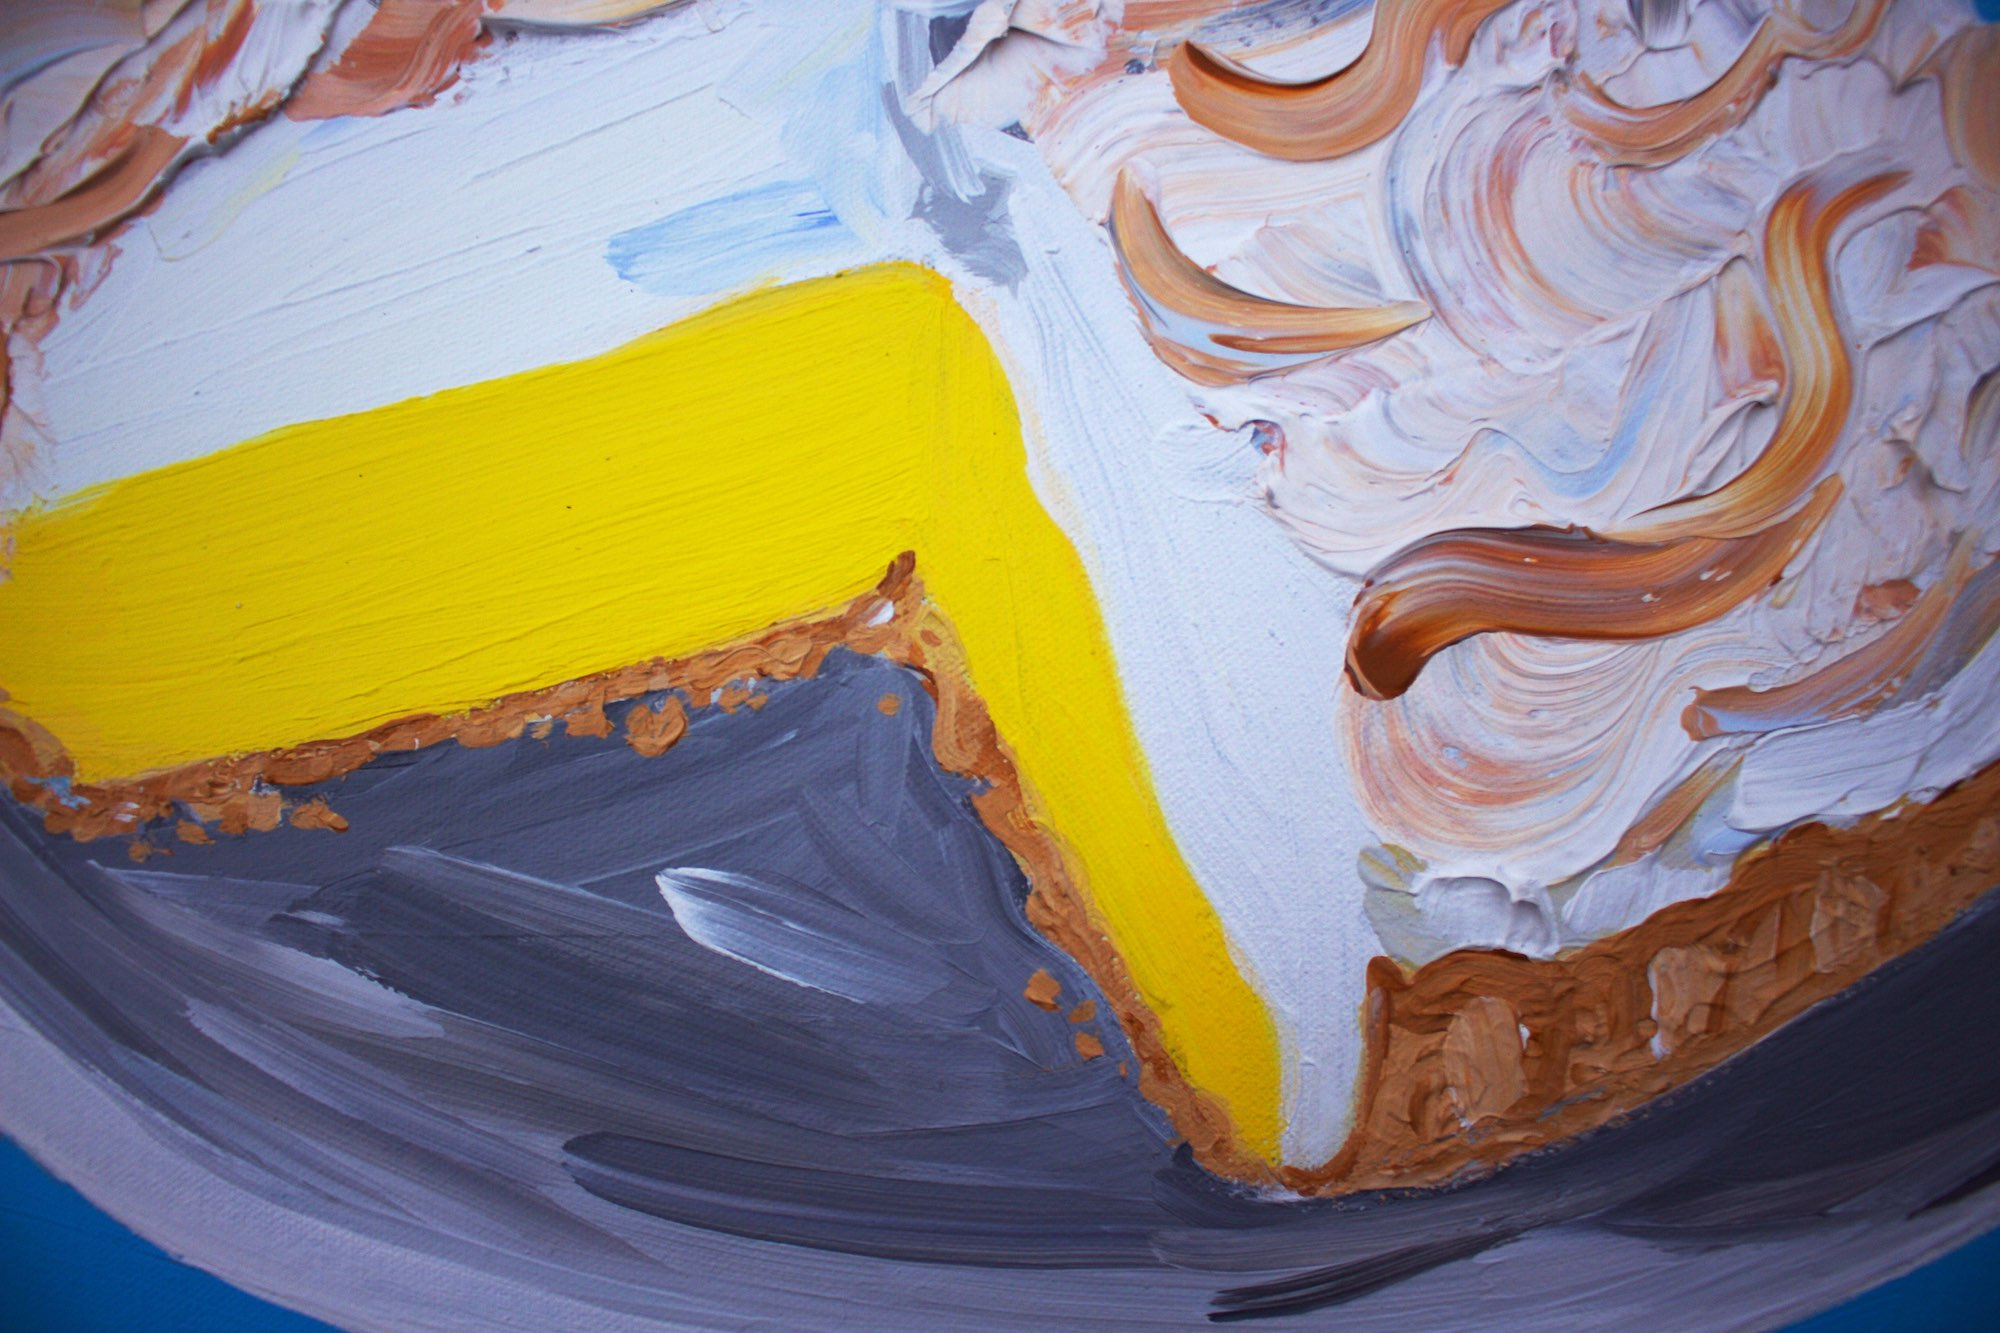 Alice Straker - Lemon Meringue pie detail